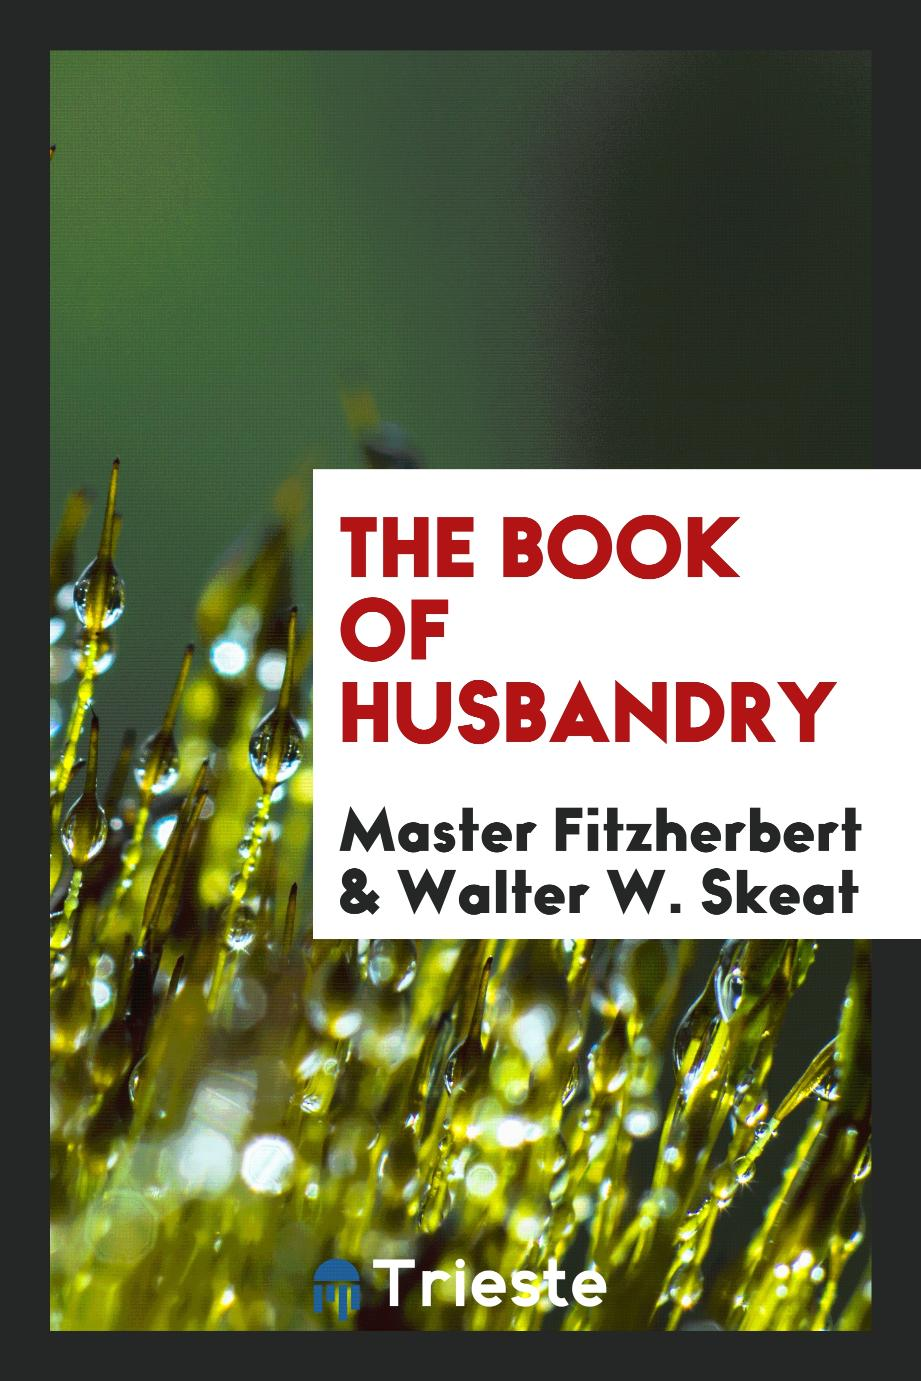 The Book of Husbandry